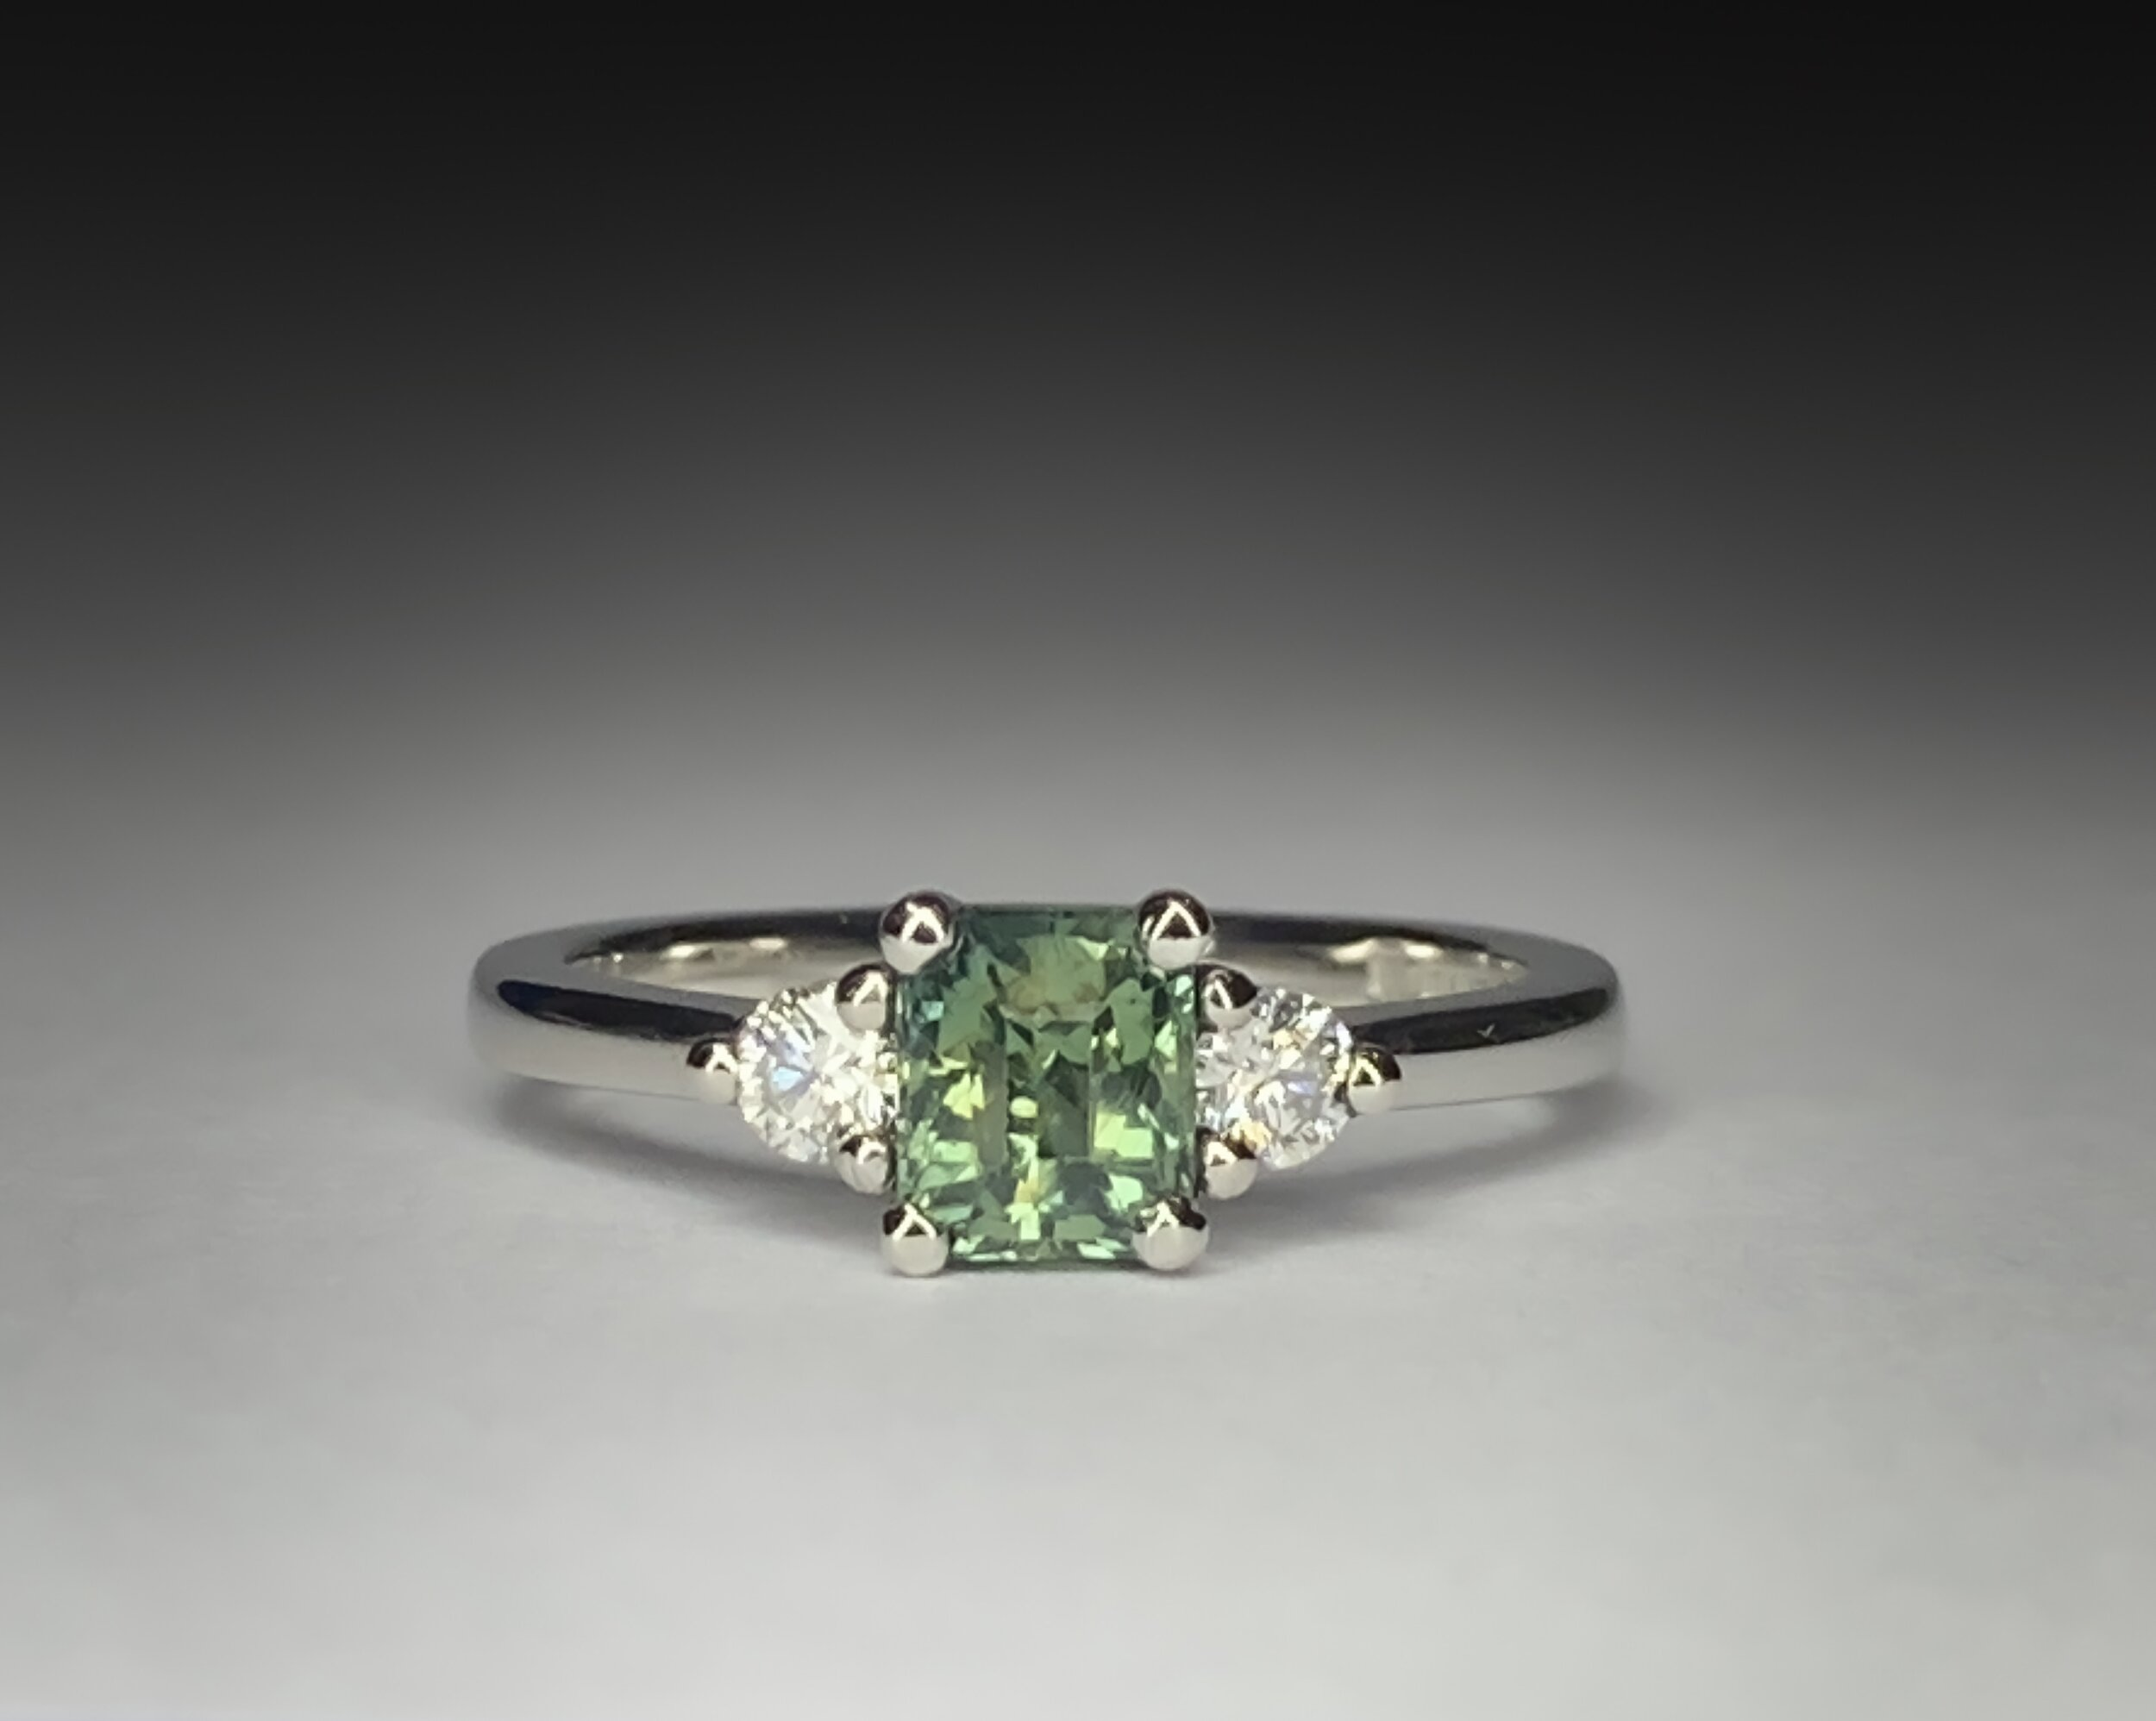 Platinum mounted diamond and 1.06ct green sapphire claw set ring. Made in Chichester, England.